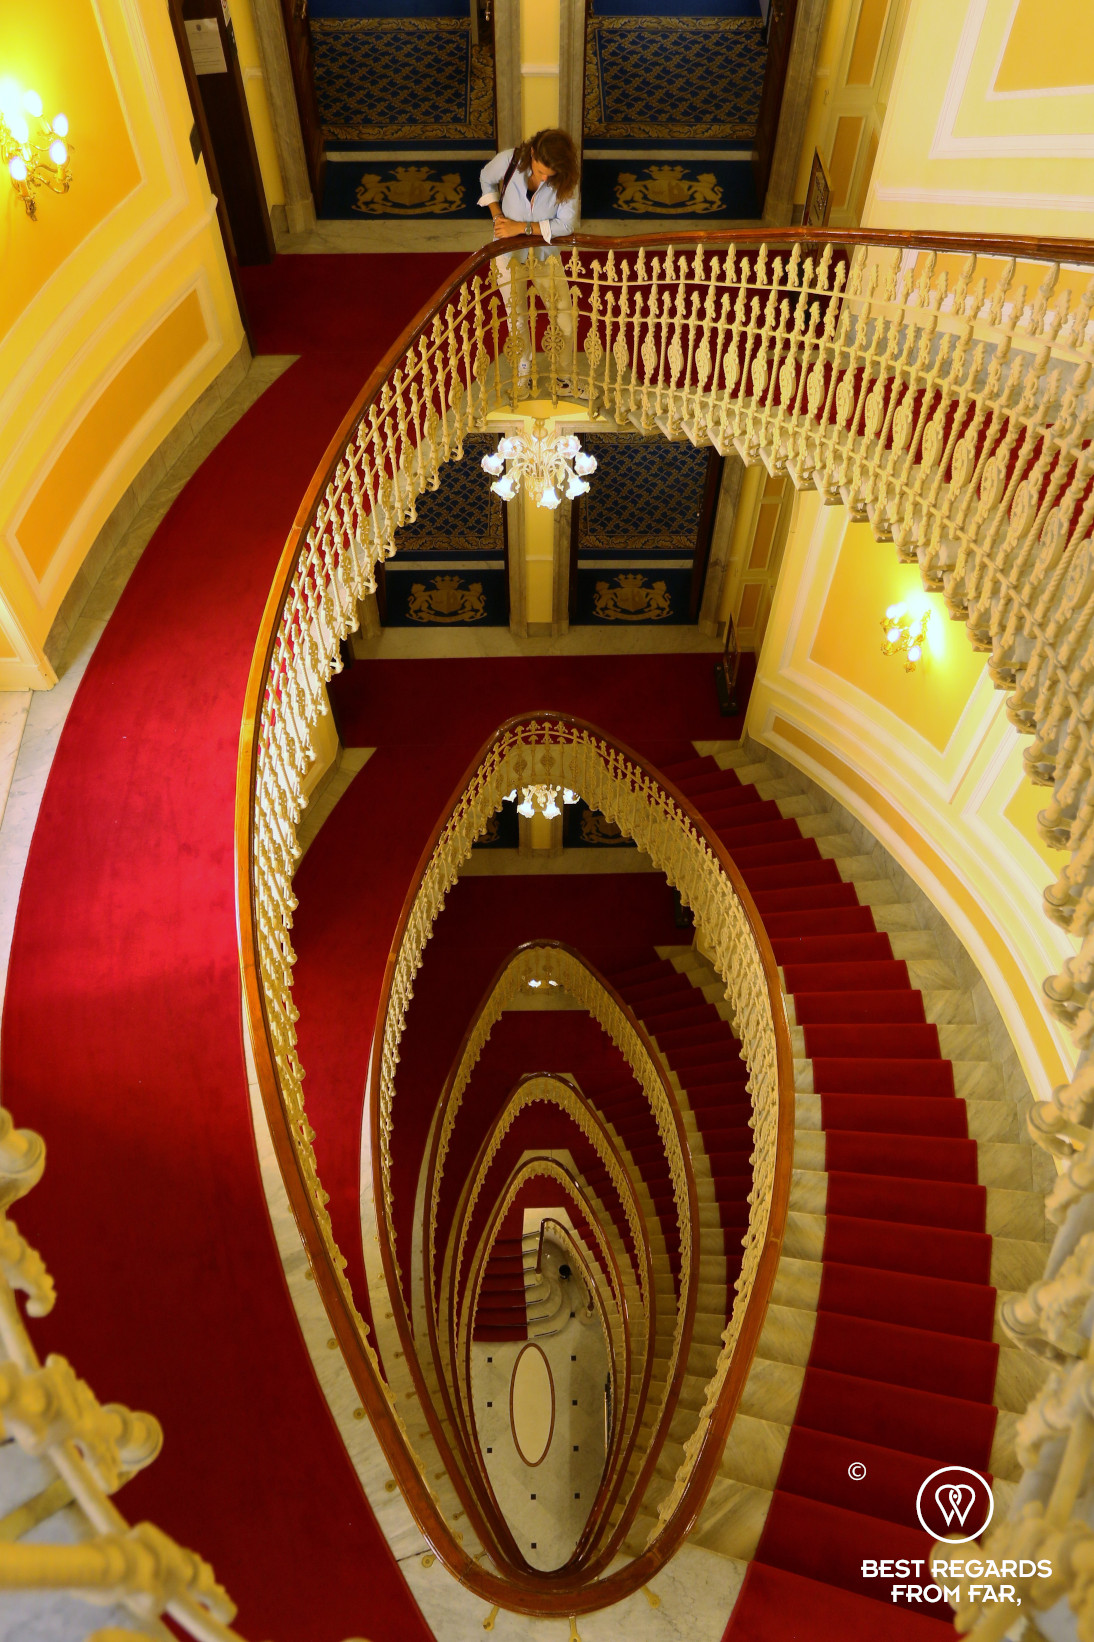 The red-carpetted spiral staircase of the the Hotel Bristol Palace in Genoa, Liguria, Italy